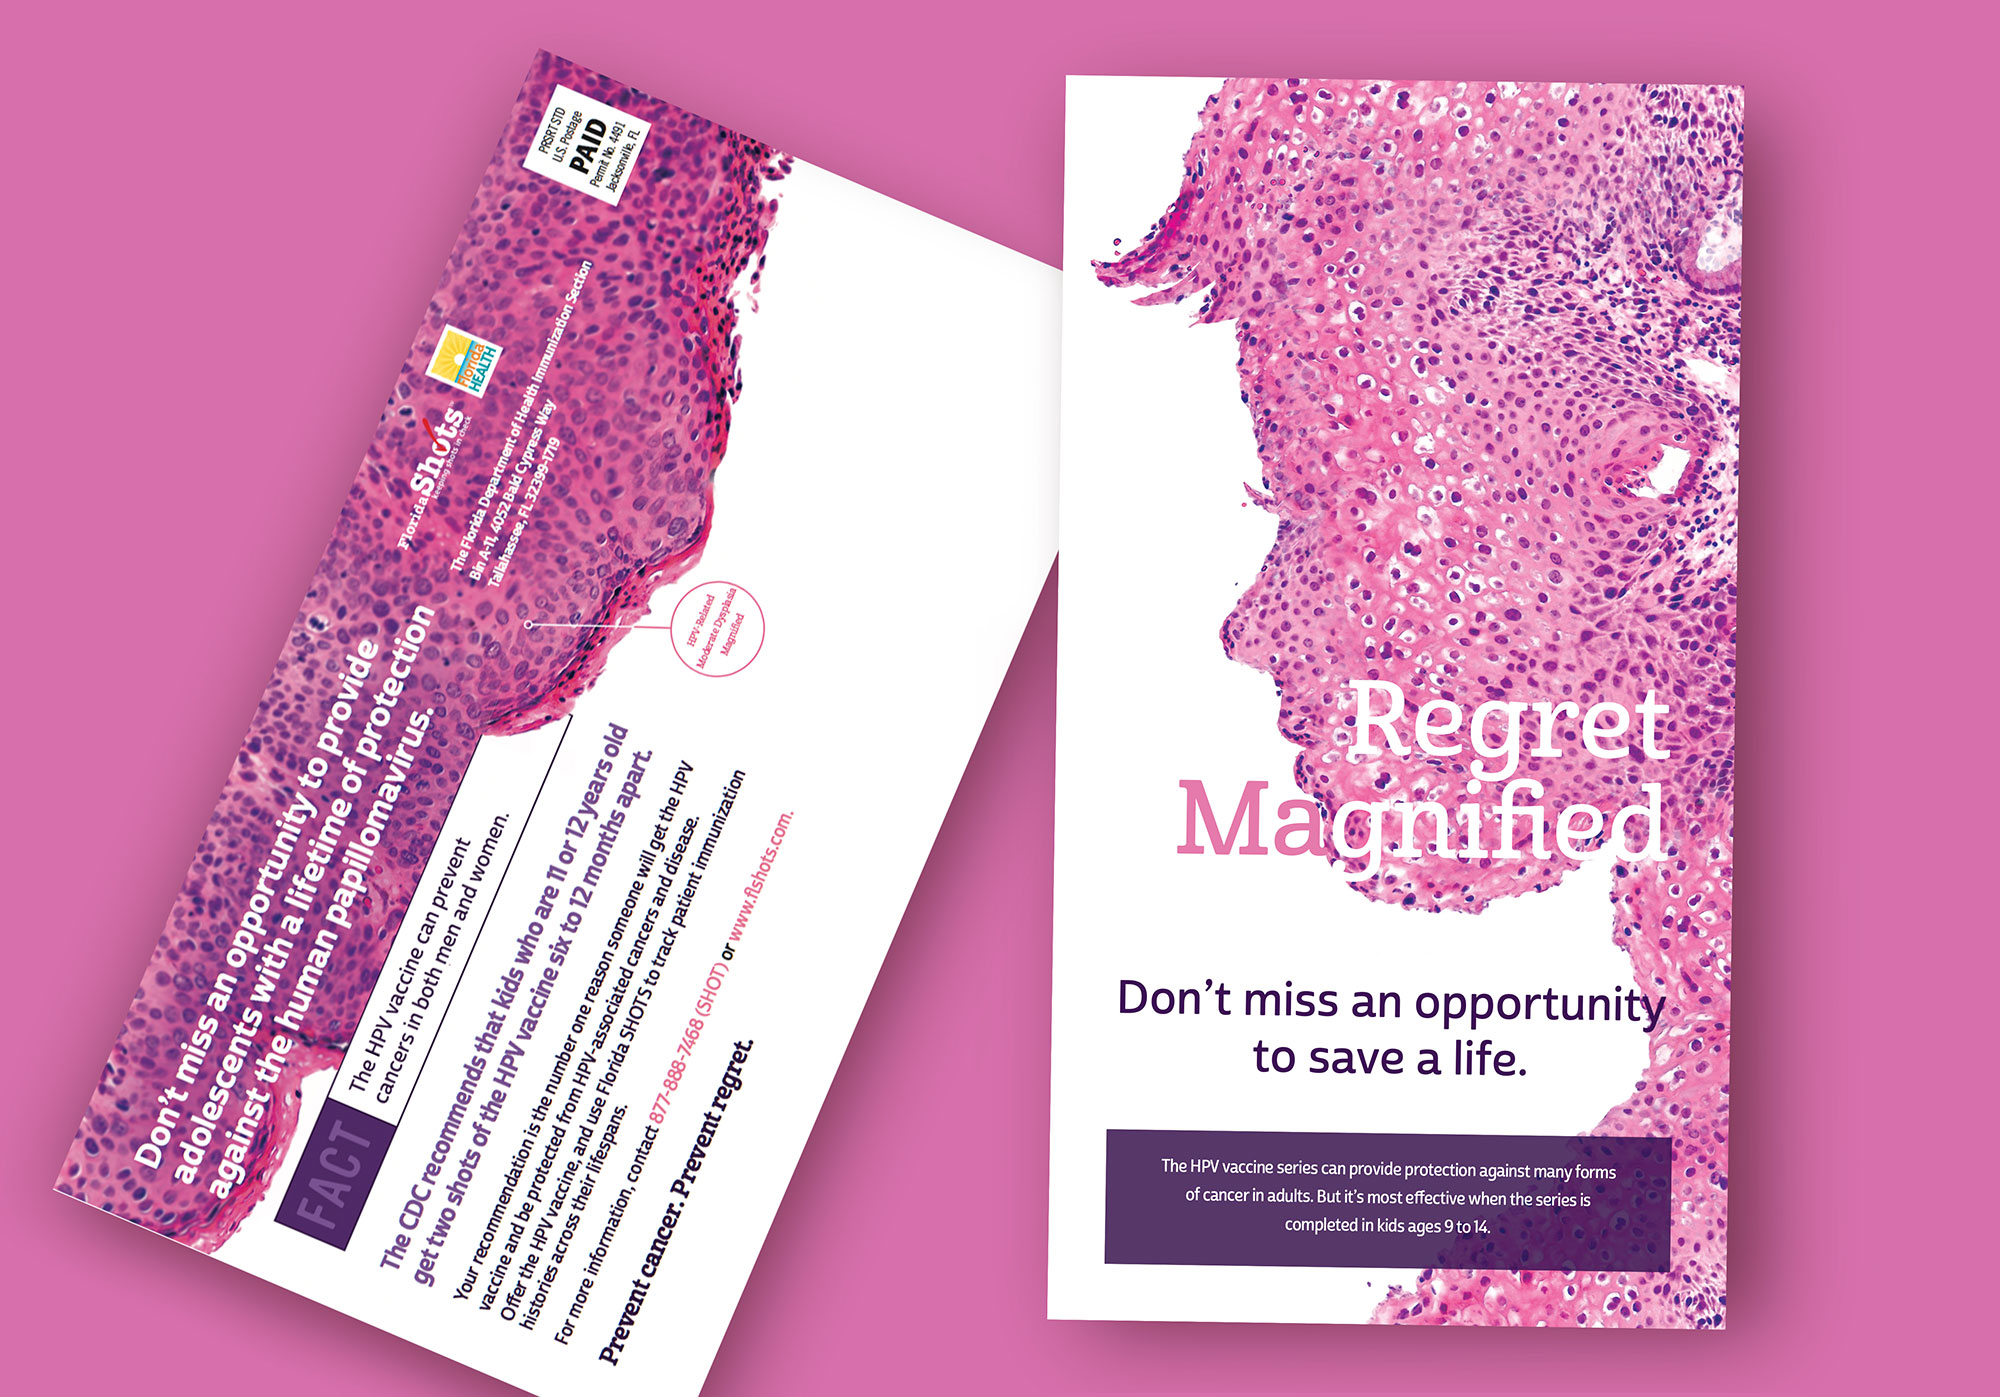 Regret Magnified postcard